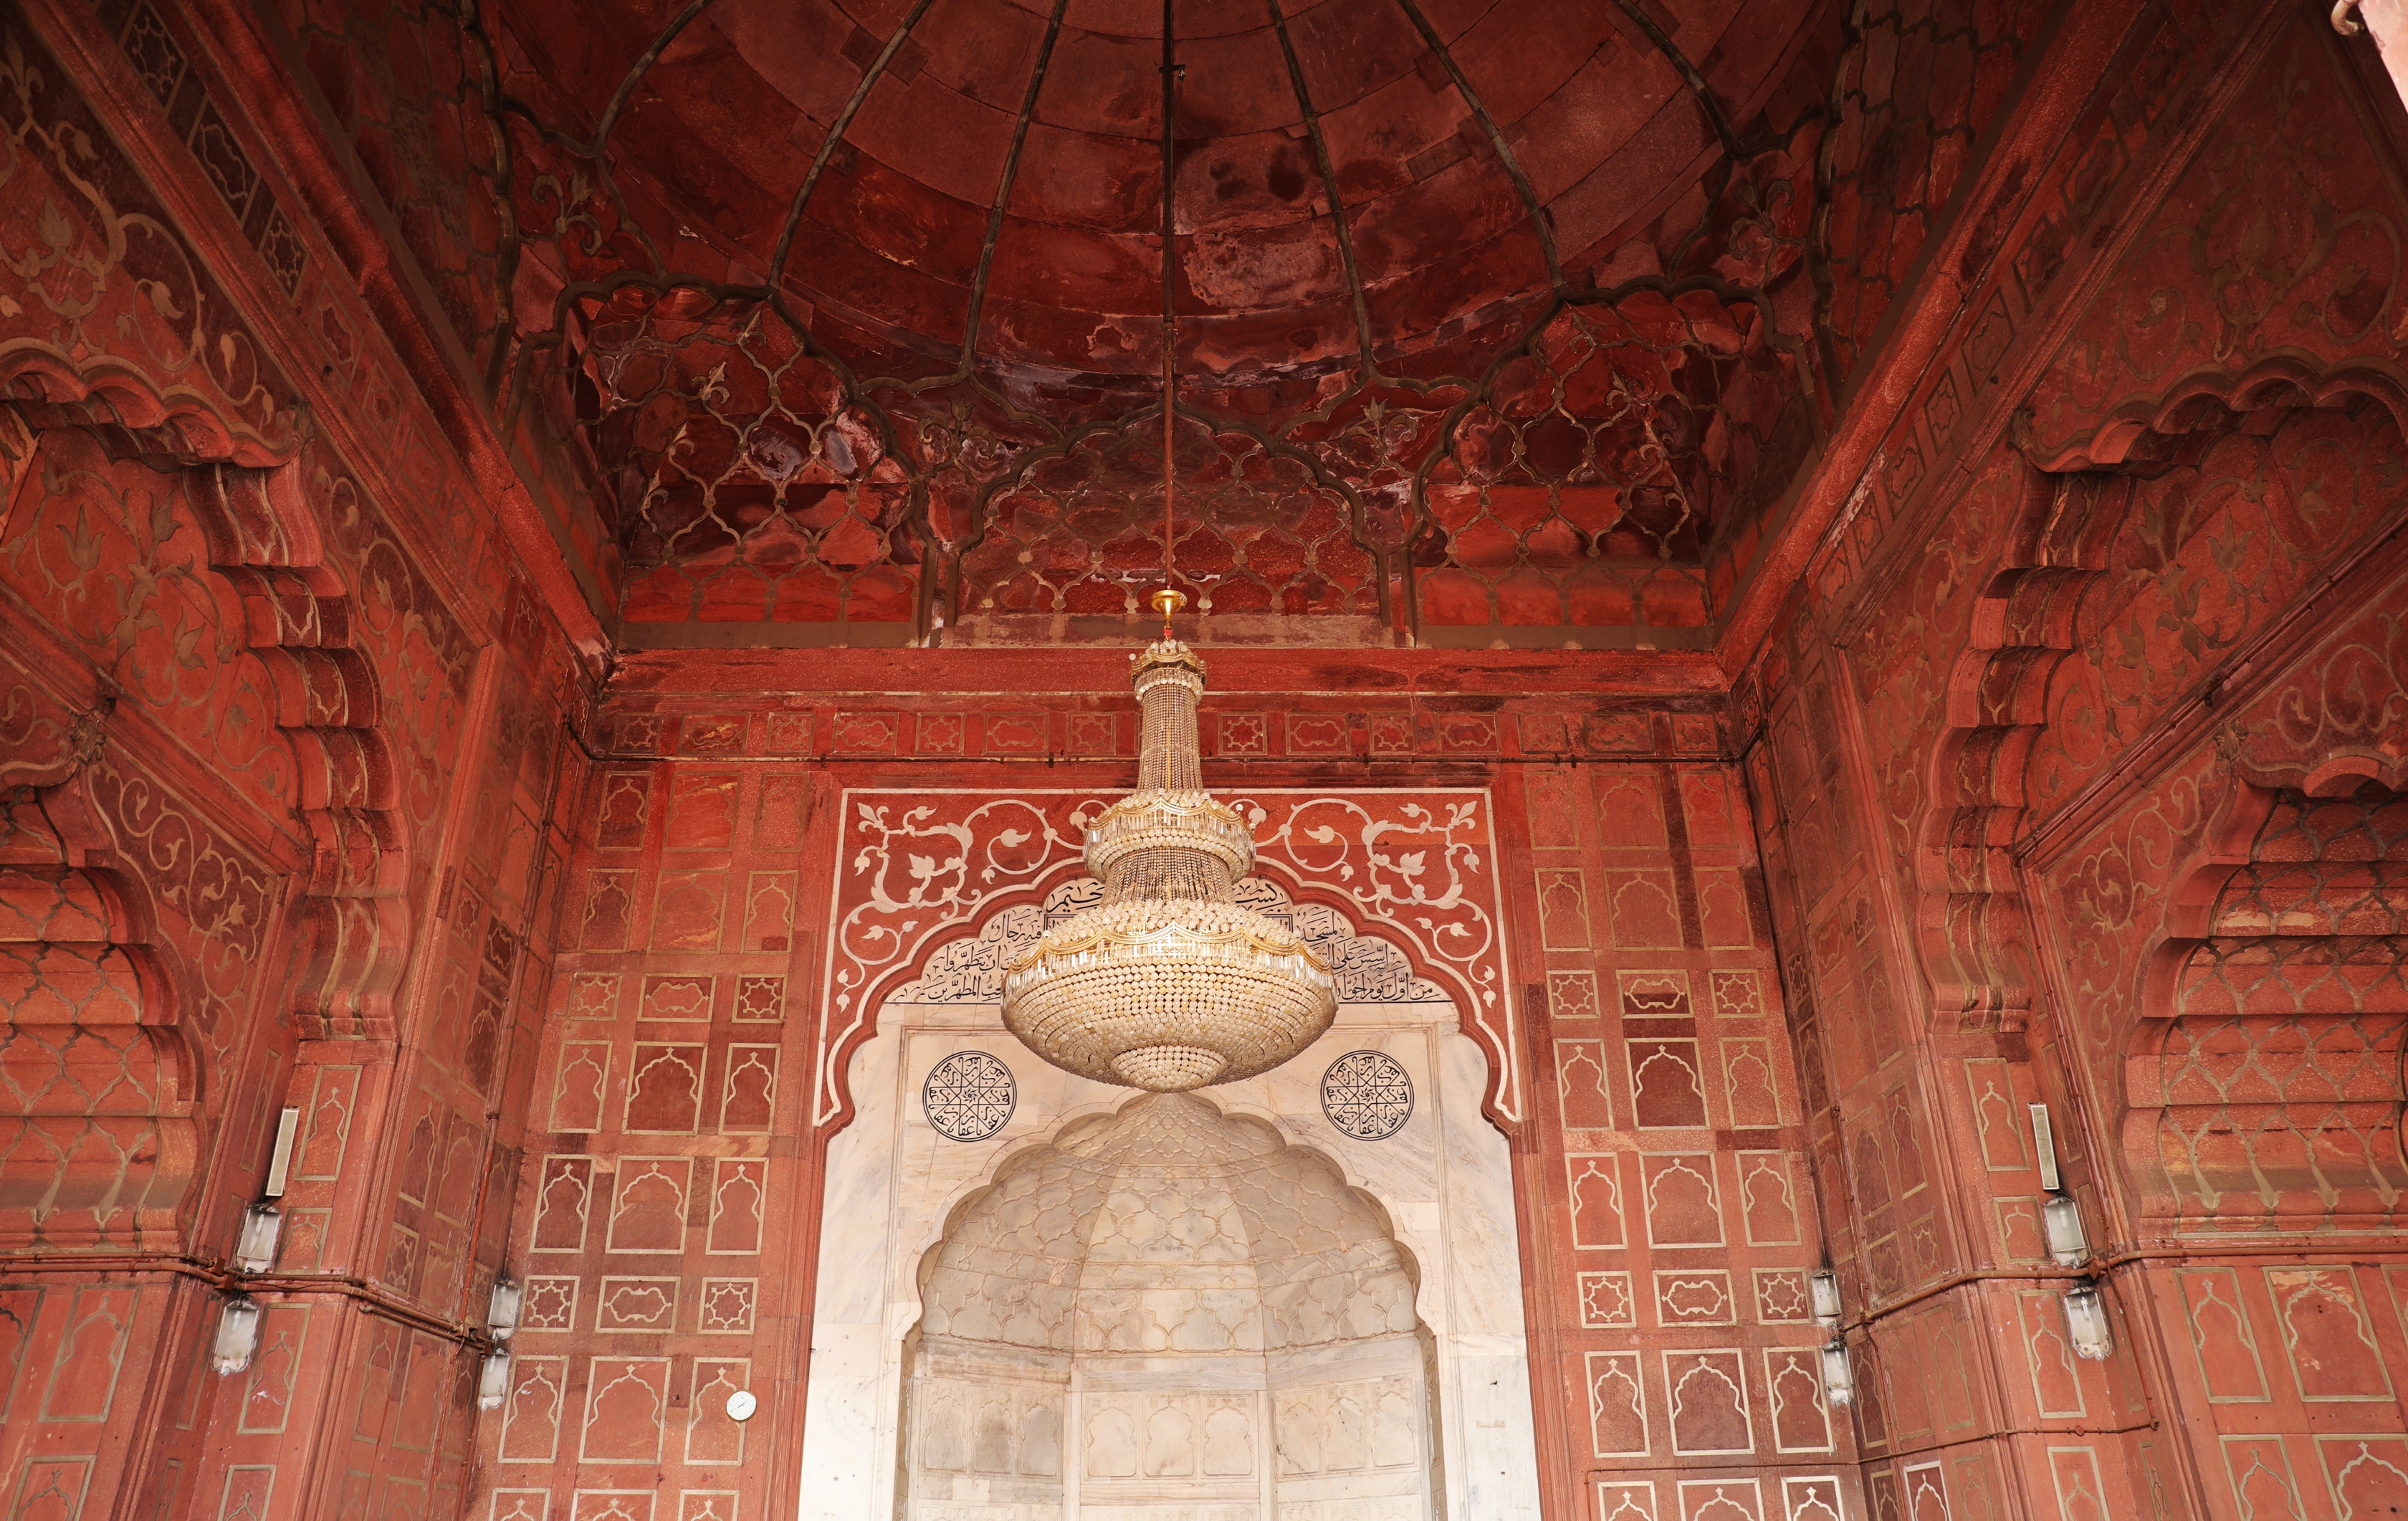 Ceiling of the prayer room, Jama Masjid, Delhi